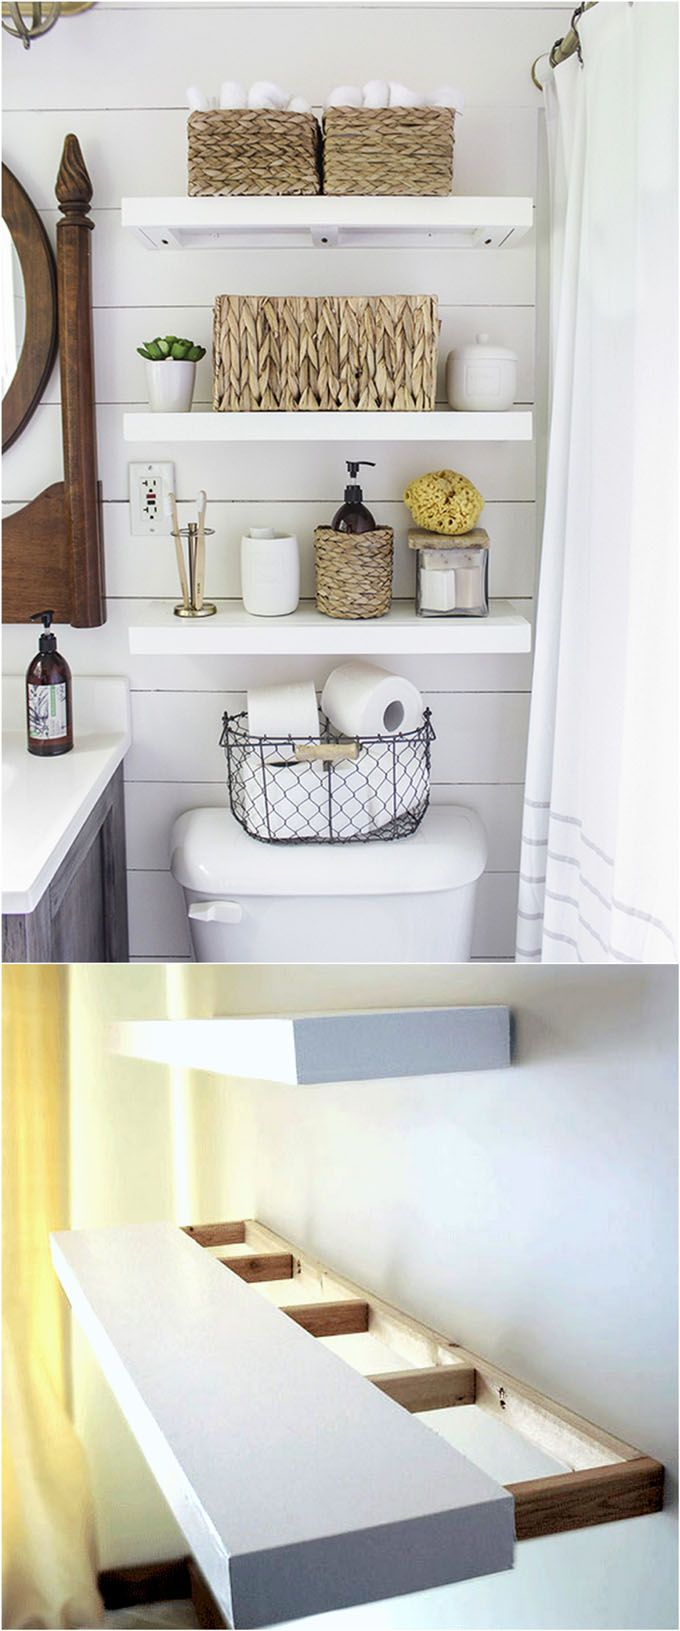 easy and stylish diy floating shelves wall hometalk bathroom tutorials building beautiful check out all the gorgeous brackets supports finishes design inspirations closet shelving